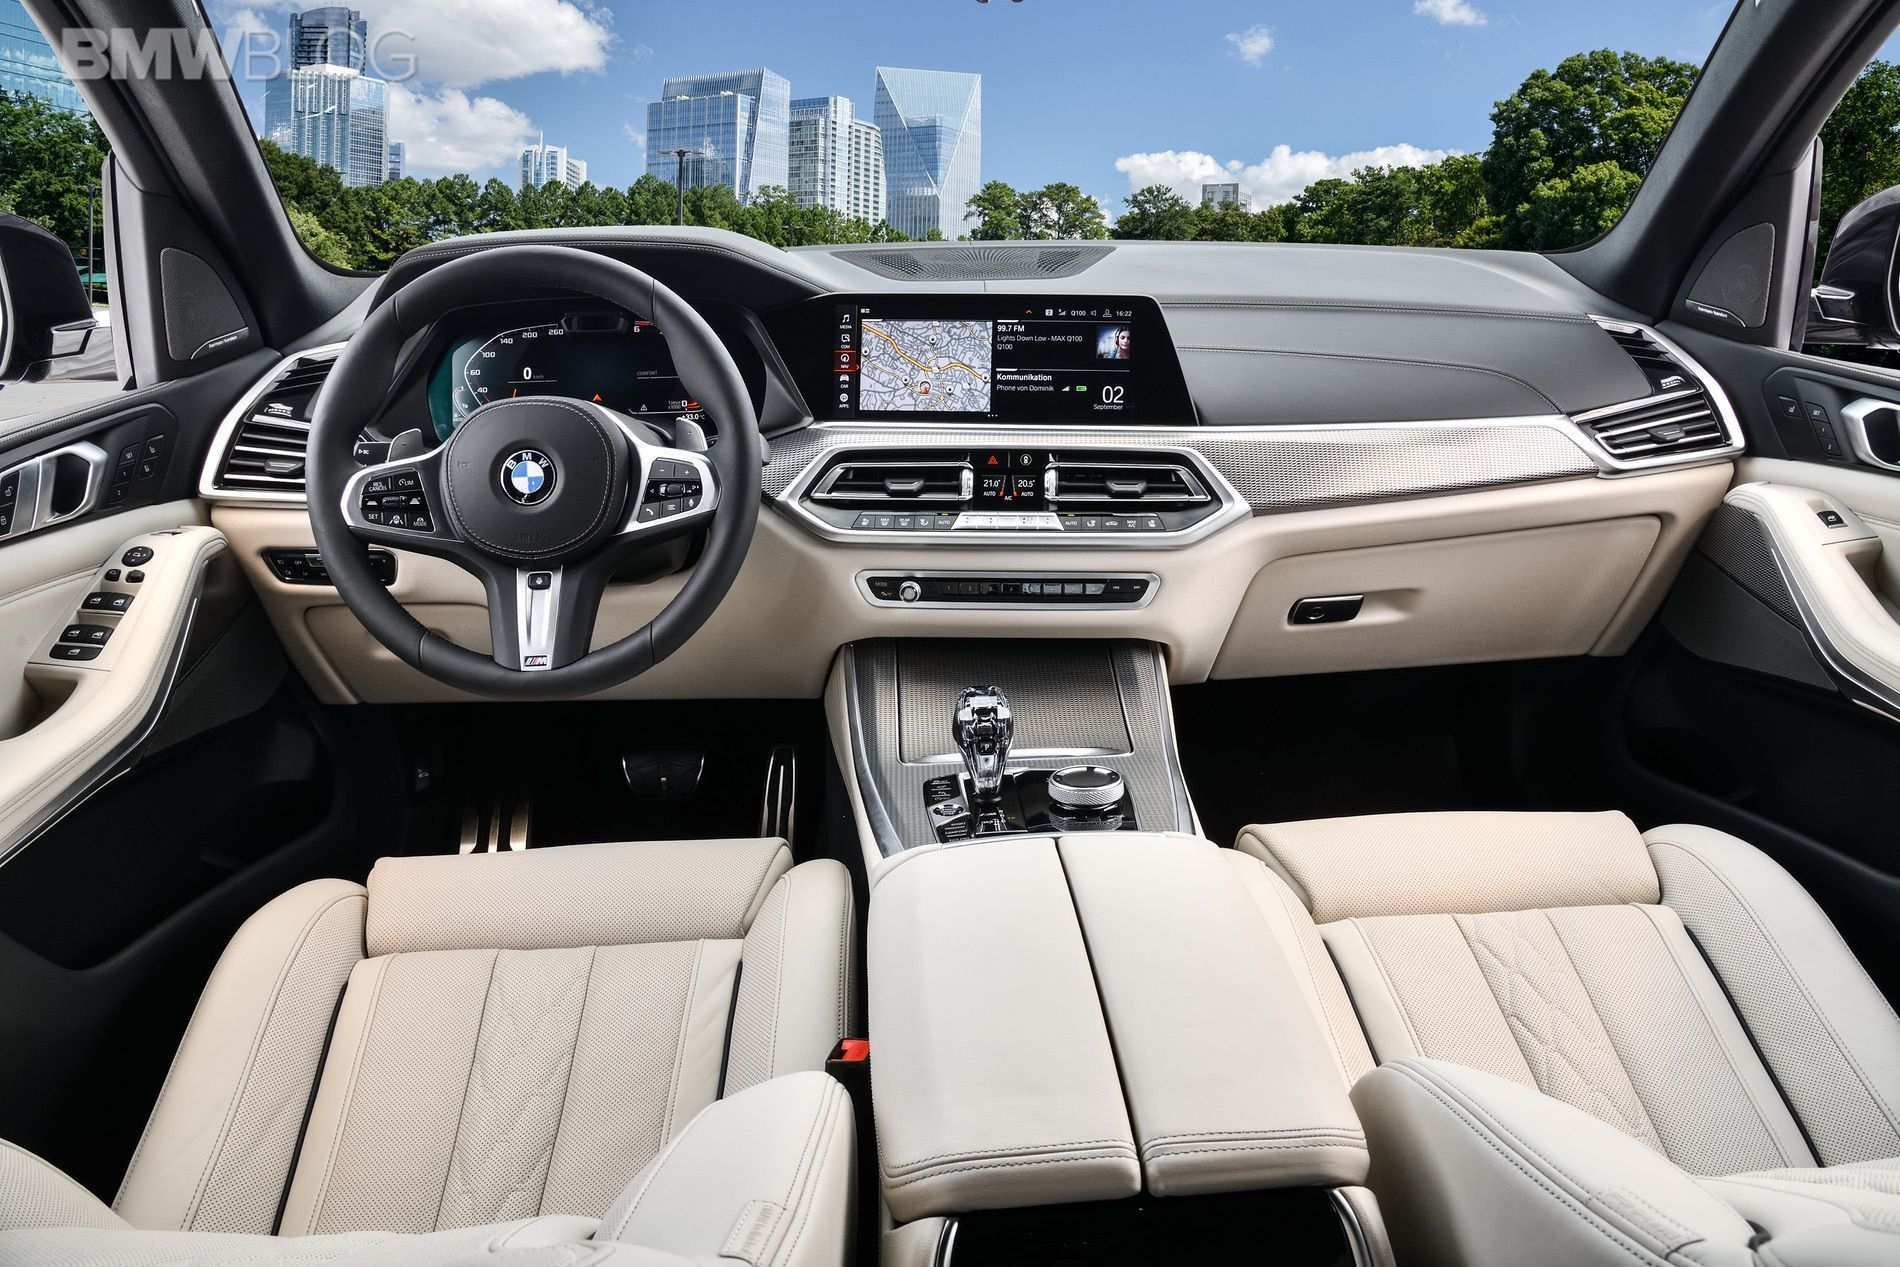 68 The 2019 Bmw Terrain Interior First Drive